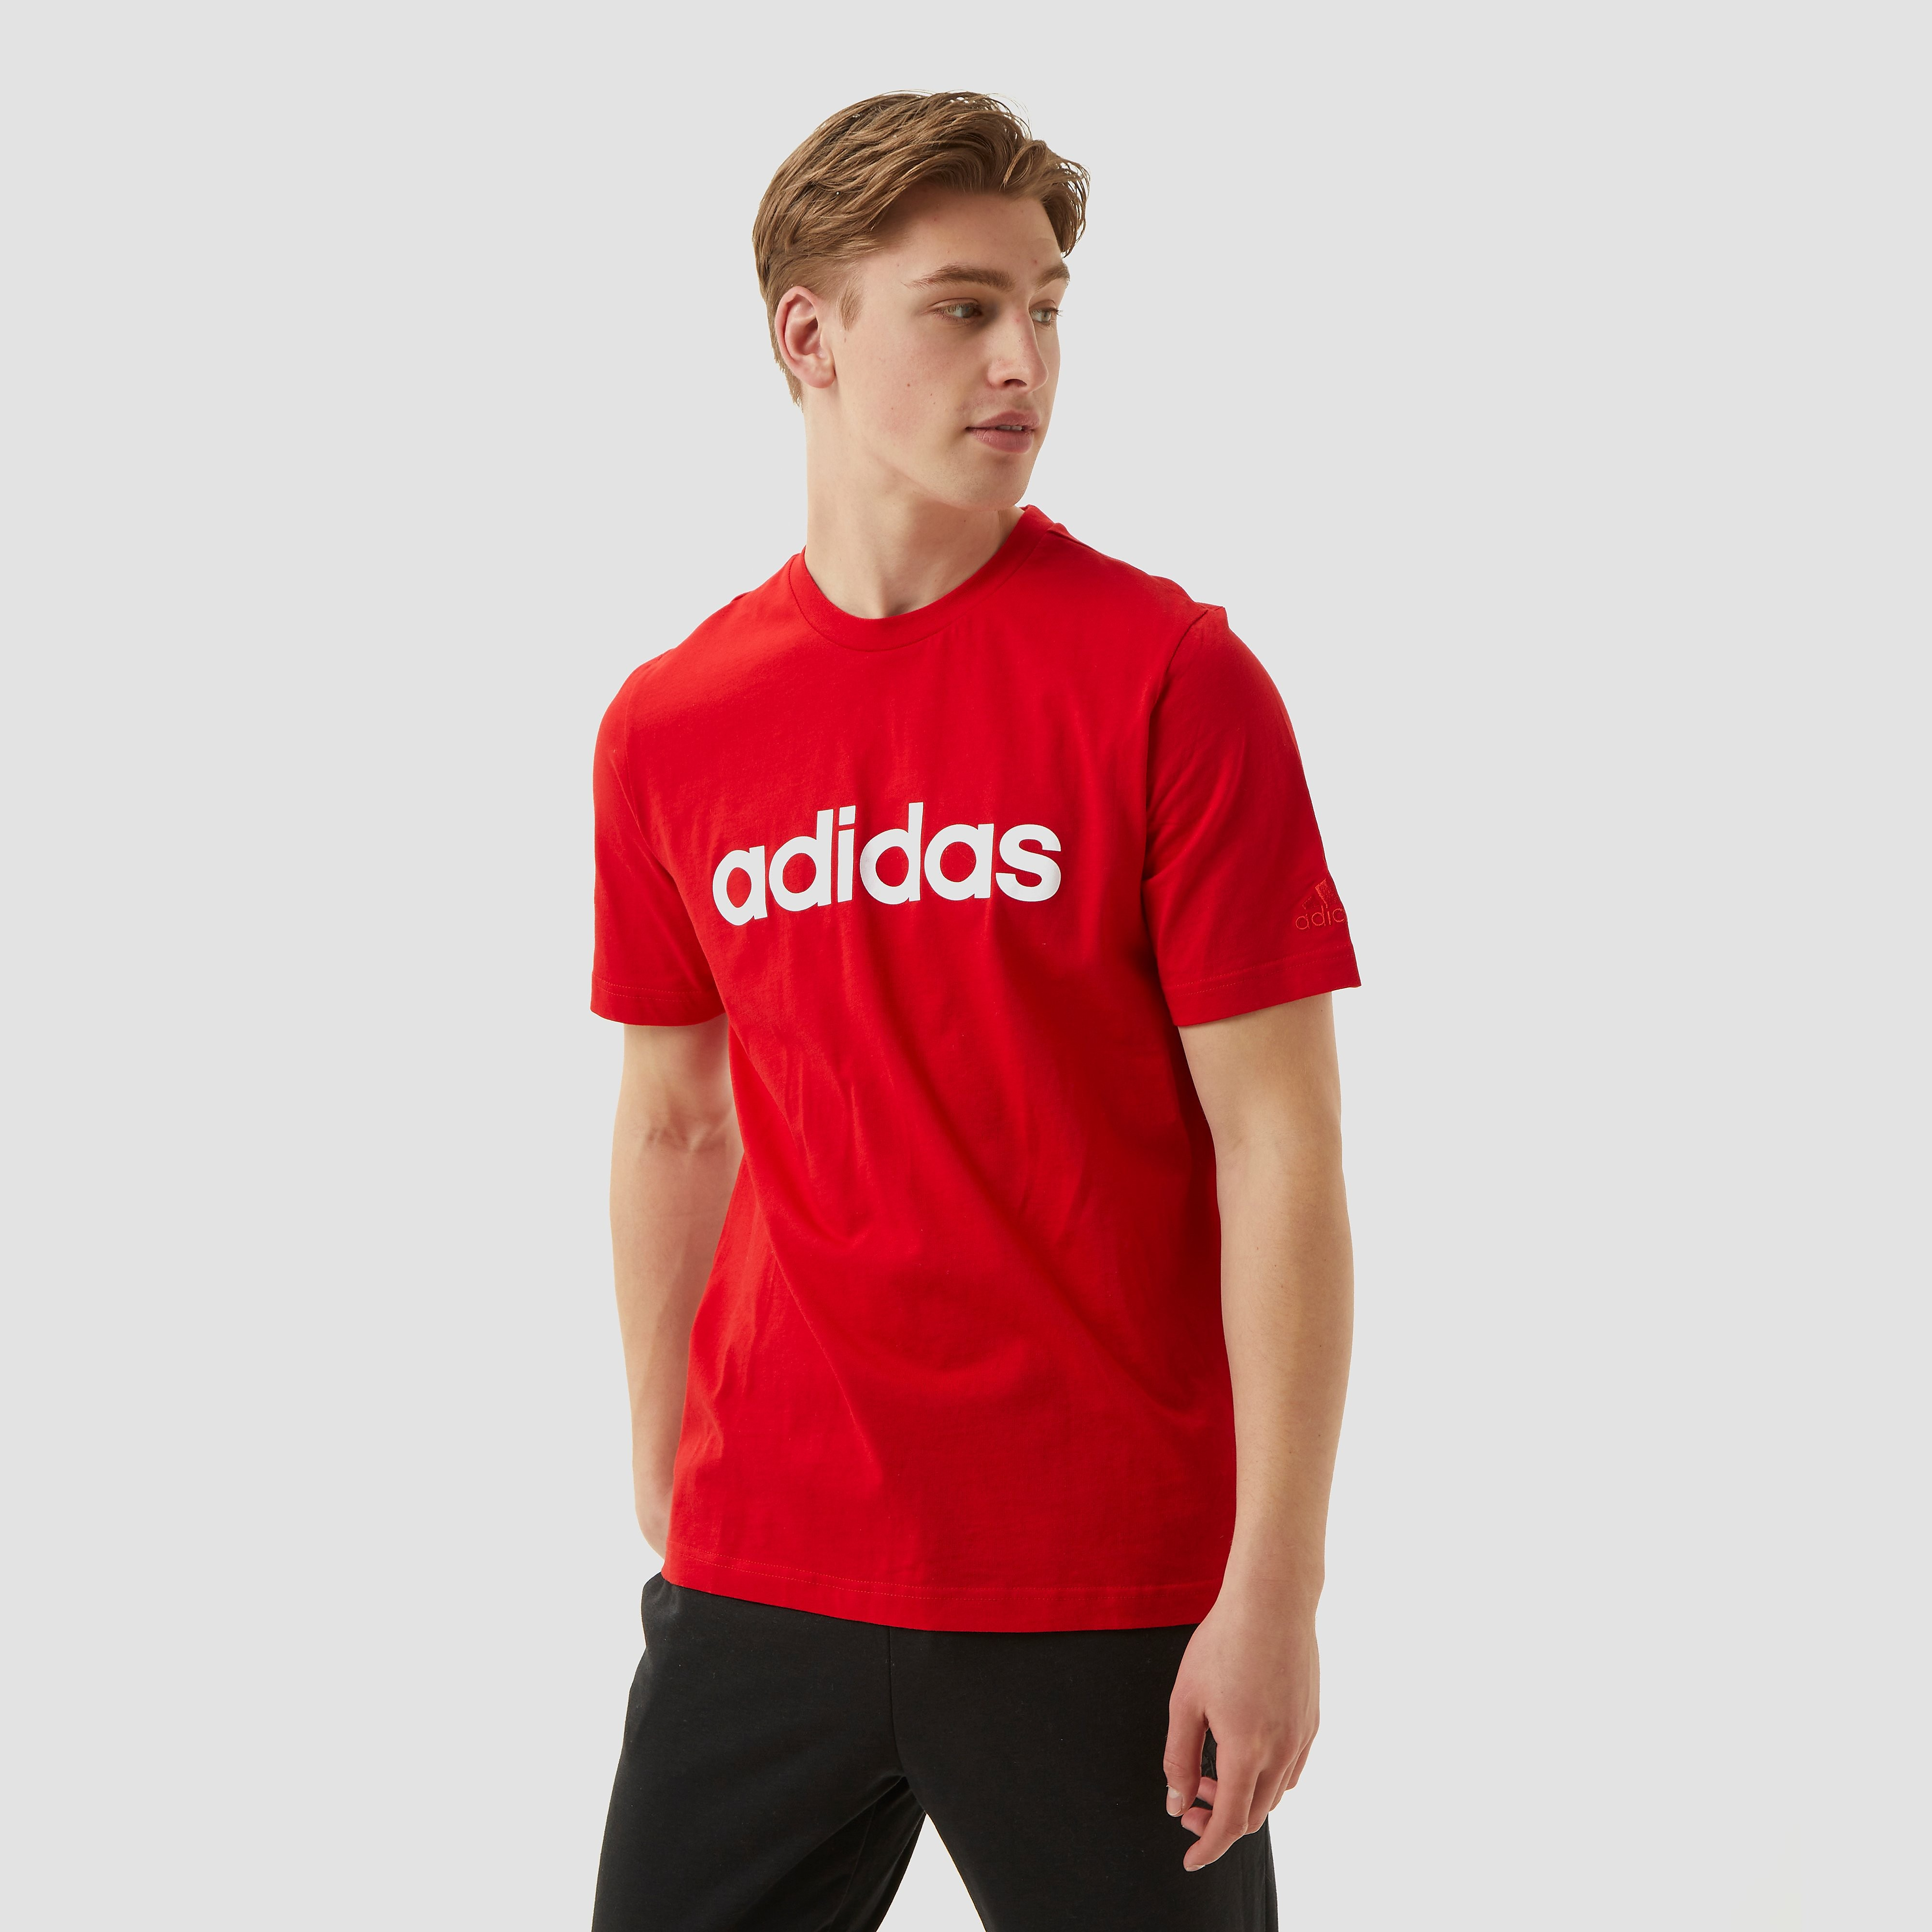 adidas Performance T-shirt ESSENTIALS EMBROIDERED LINEAR LOGO